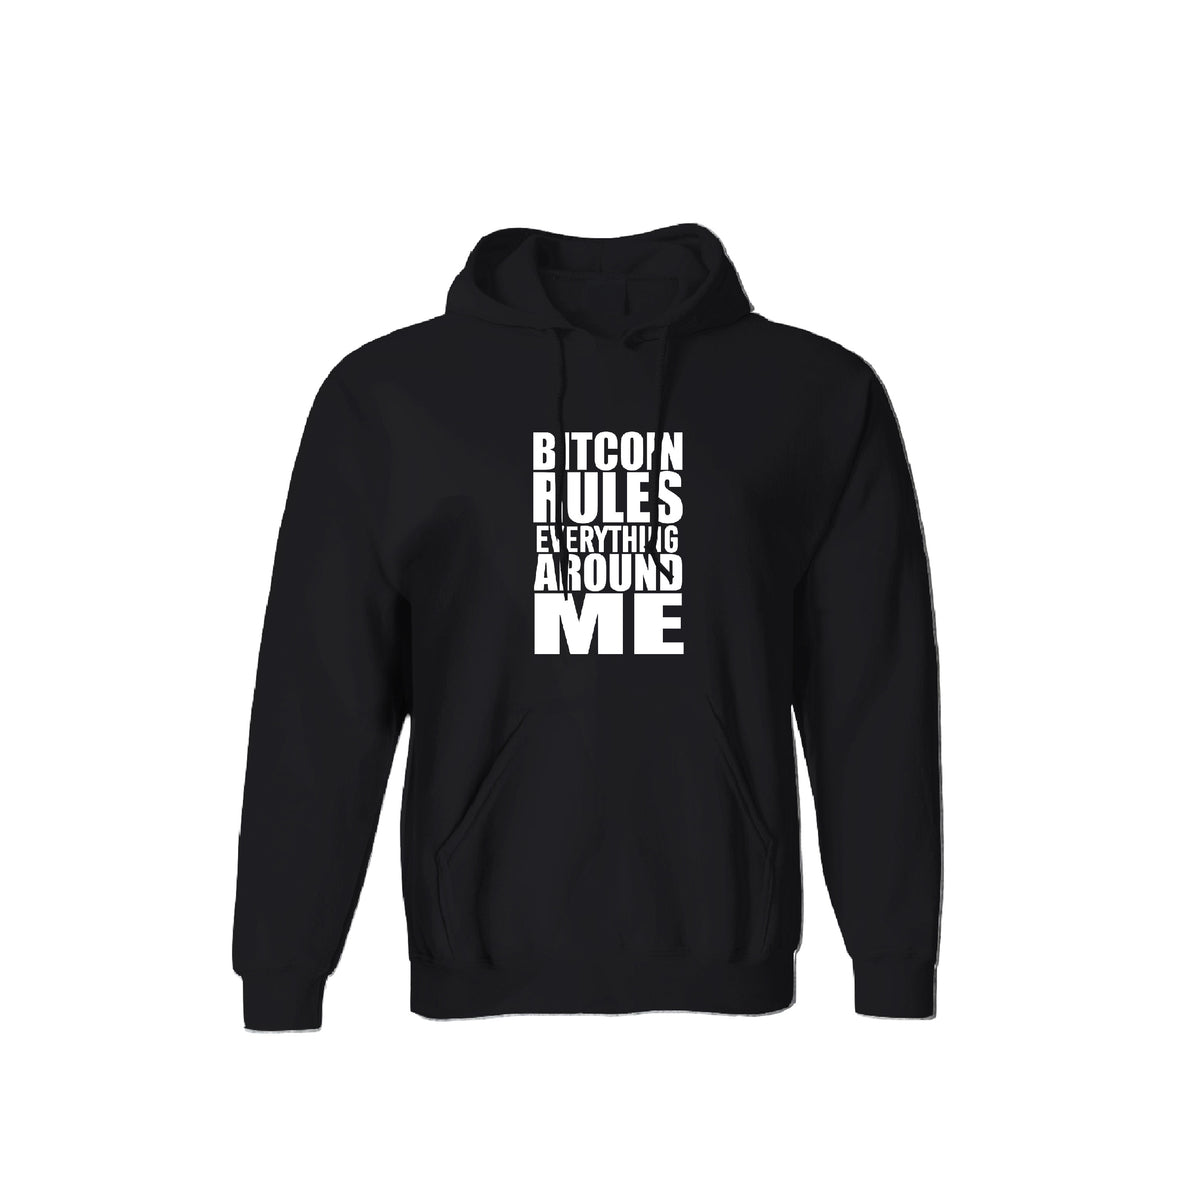 Bitcoin Rules Everything Around Me Unisex Hoodie - Pockets Moda Customise Hoodies and Tshirt